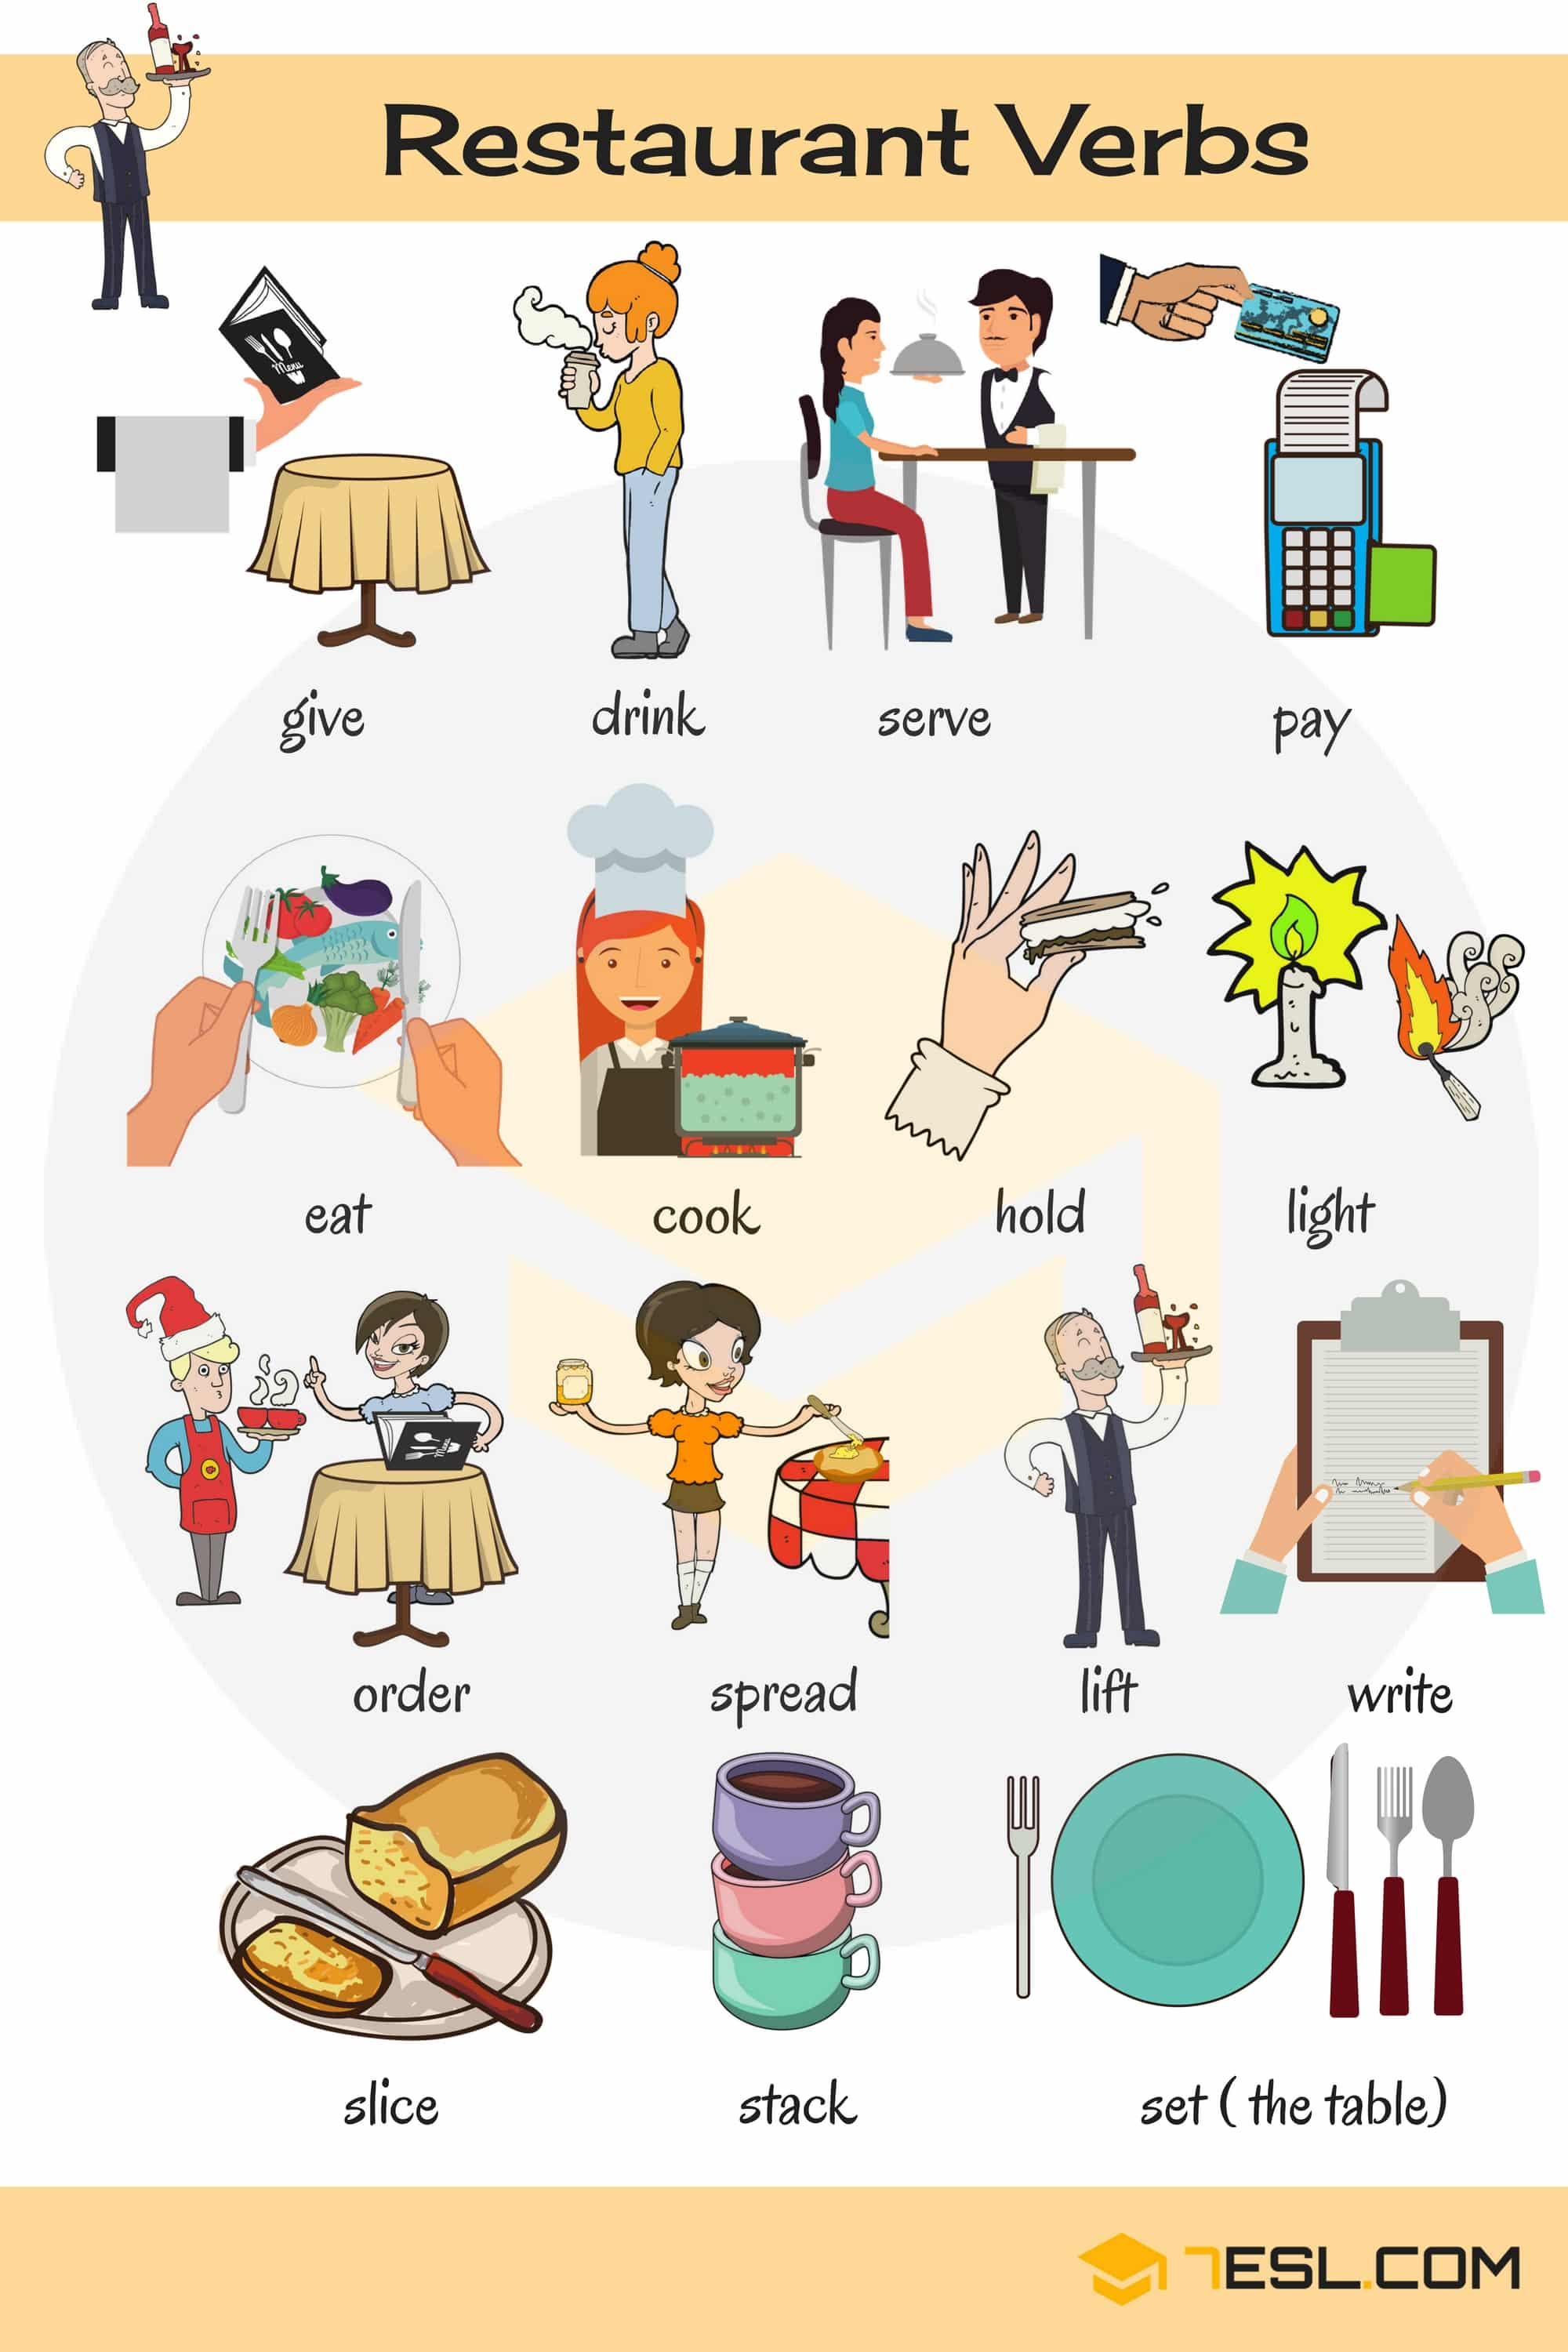 Restaurant Verbs In English